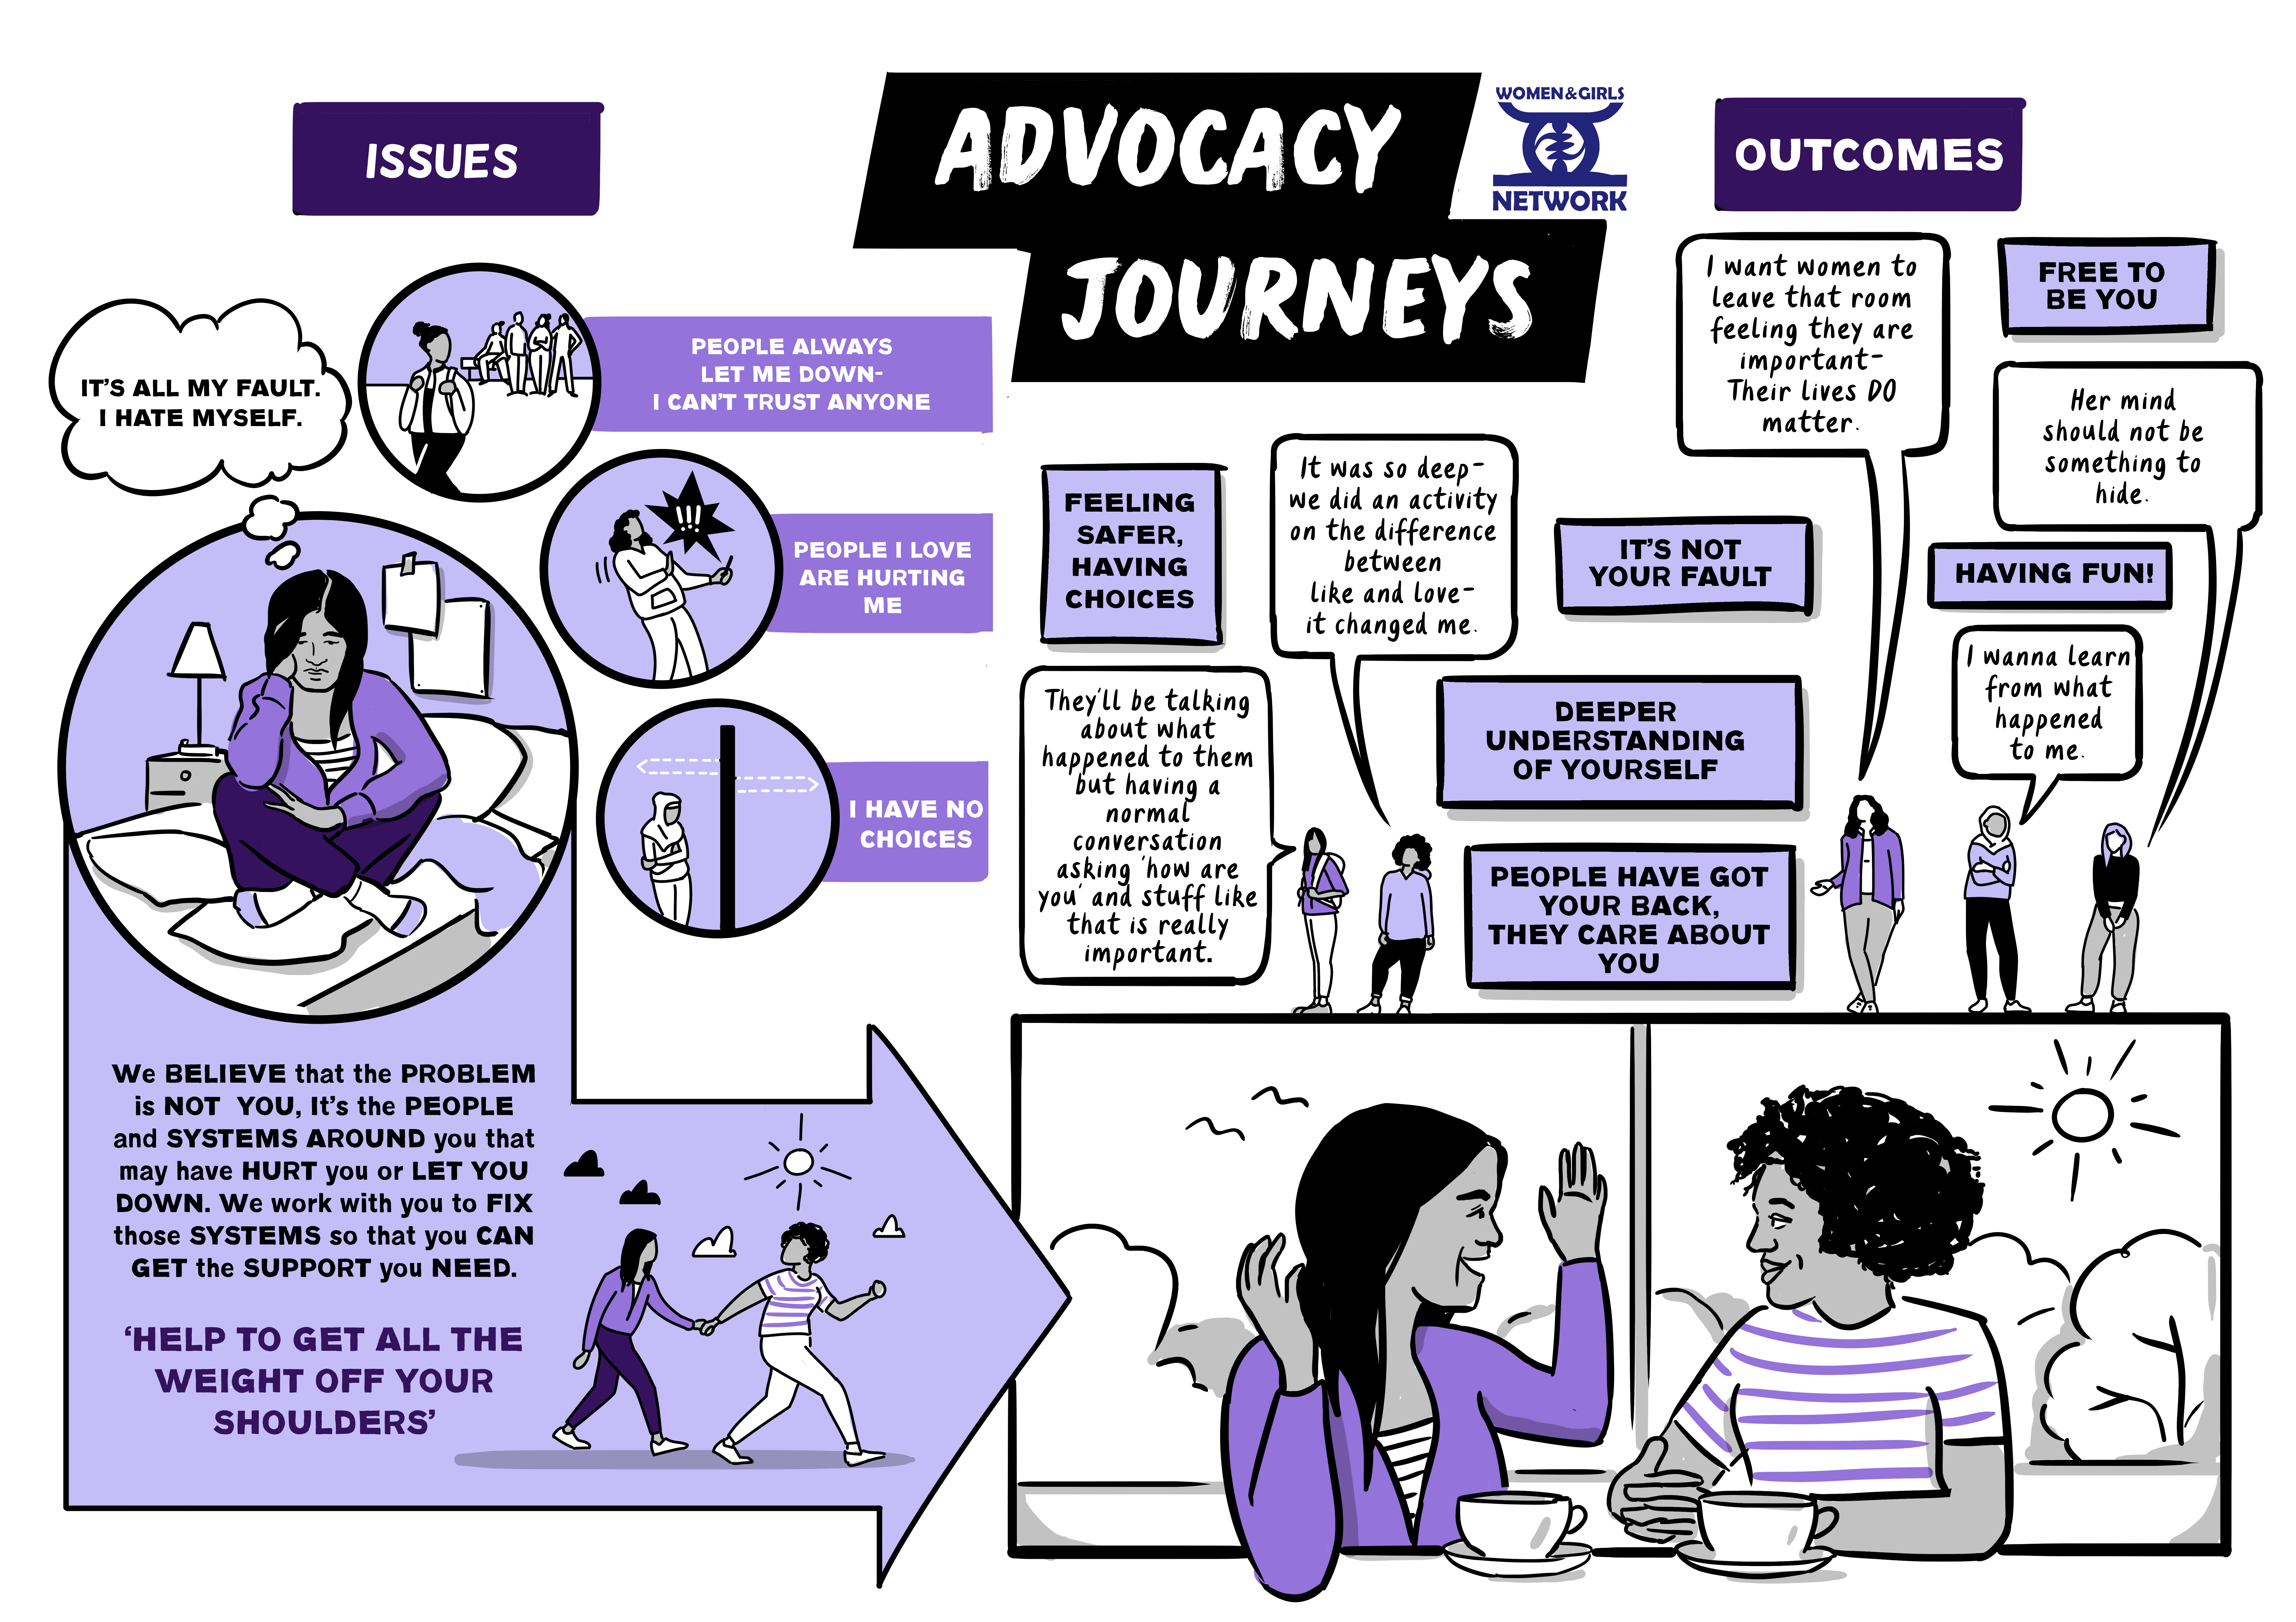 cartoon about advocacy journey